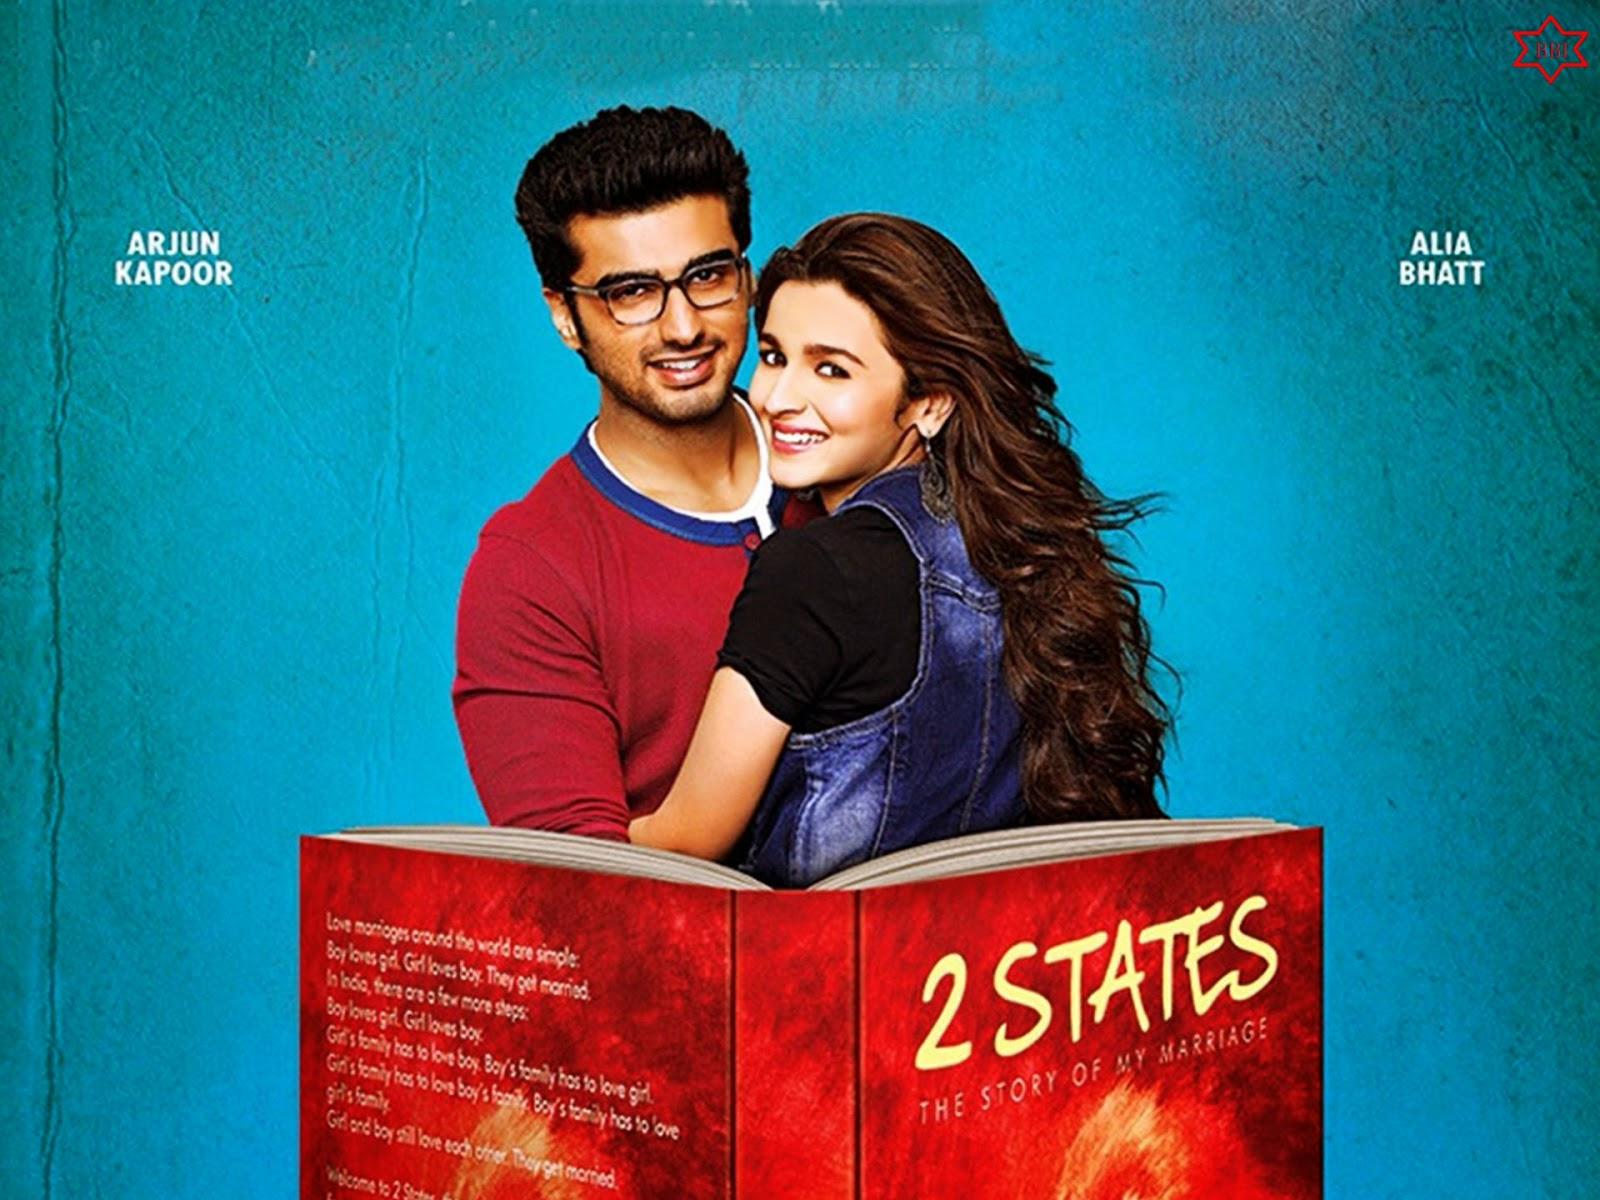 2 States Hd Wallpapers For Movie Fans Blog By Idiots